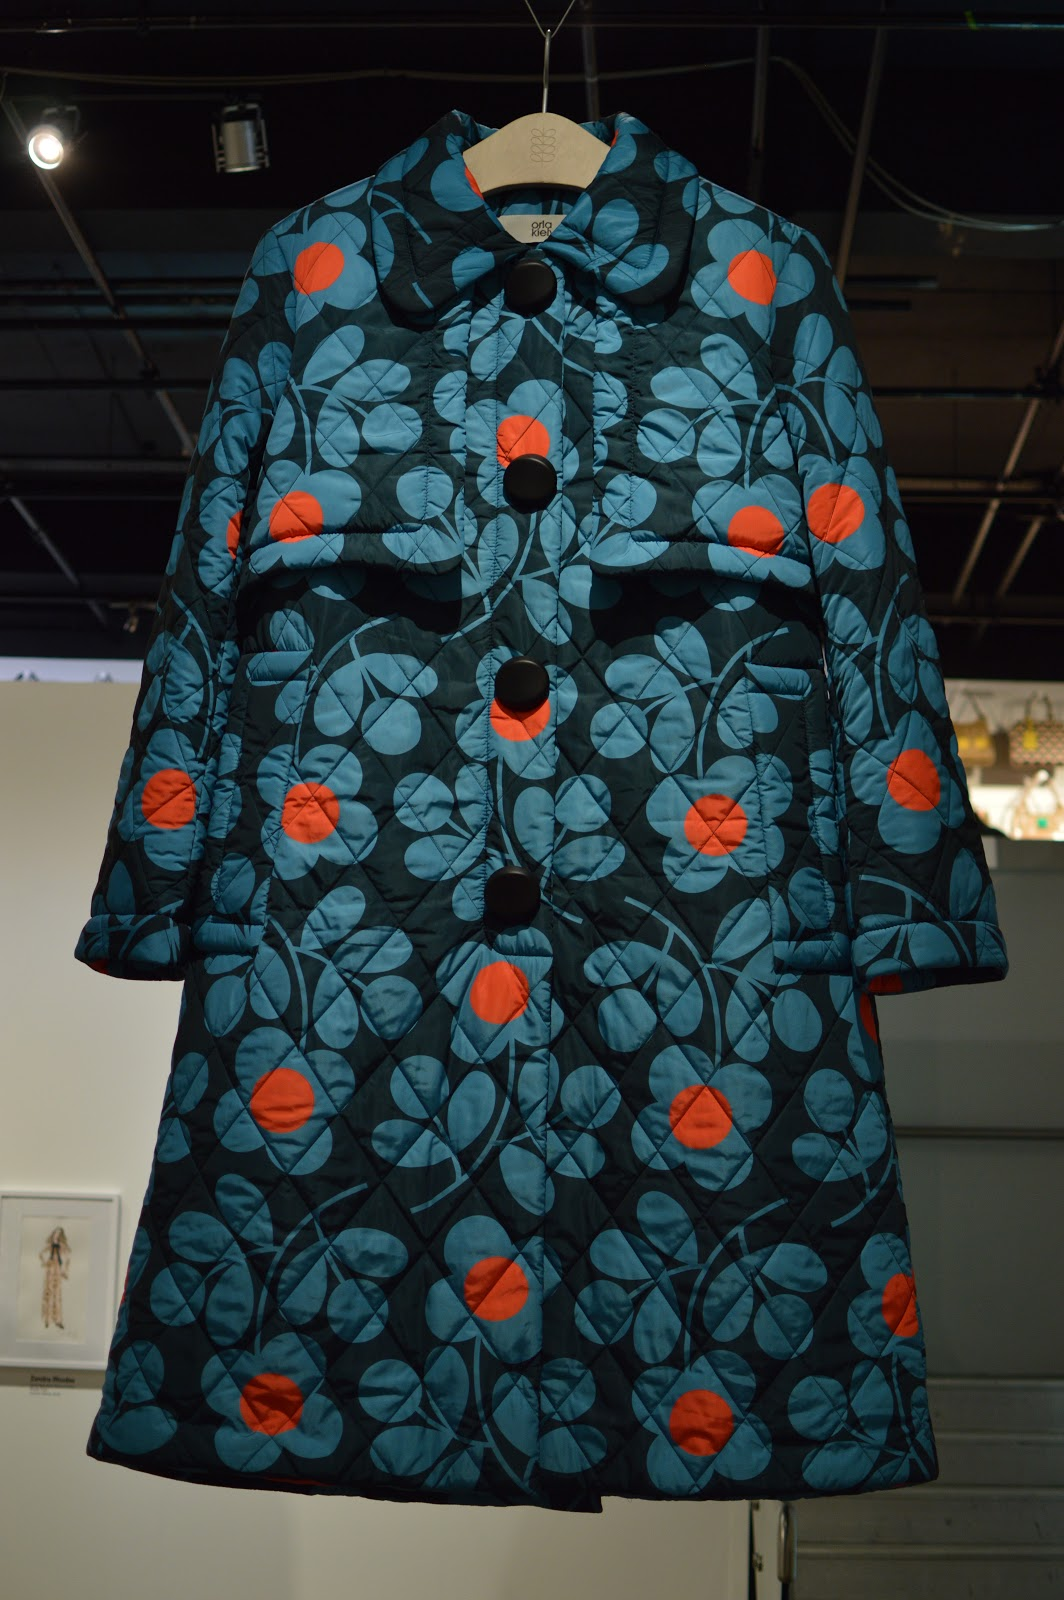 Orla Kiely: A Life in Pattern exhibition at the Fashion and Textile Museum in London